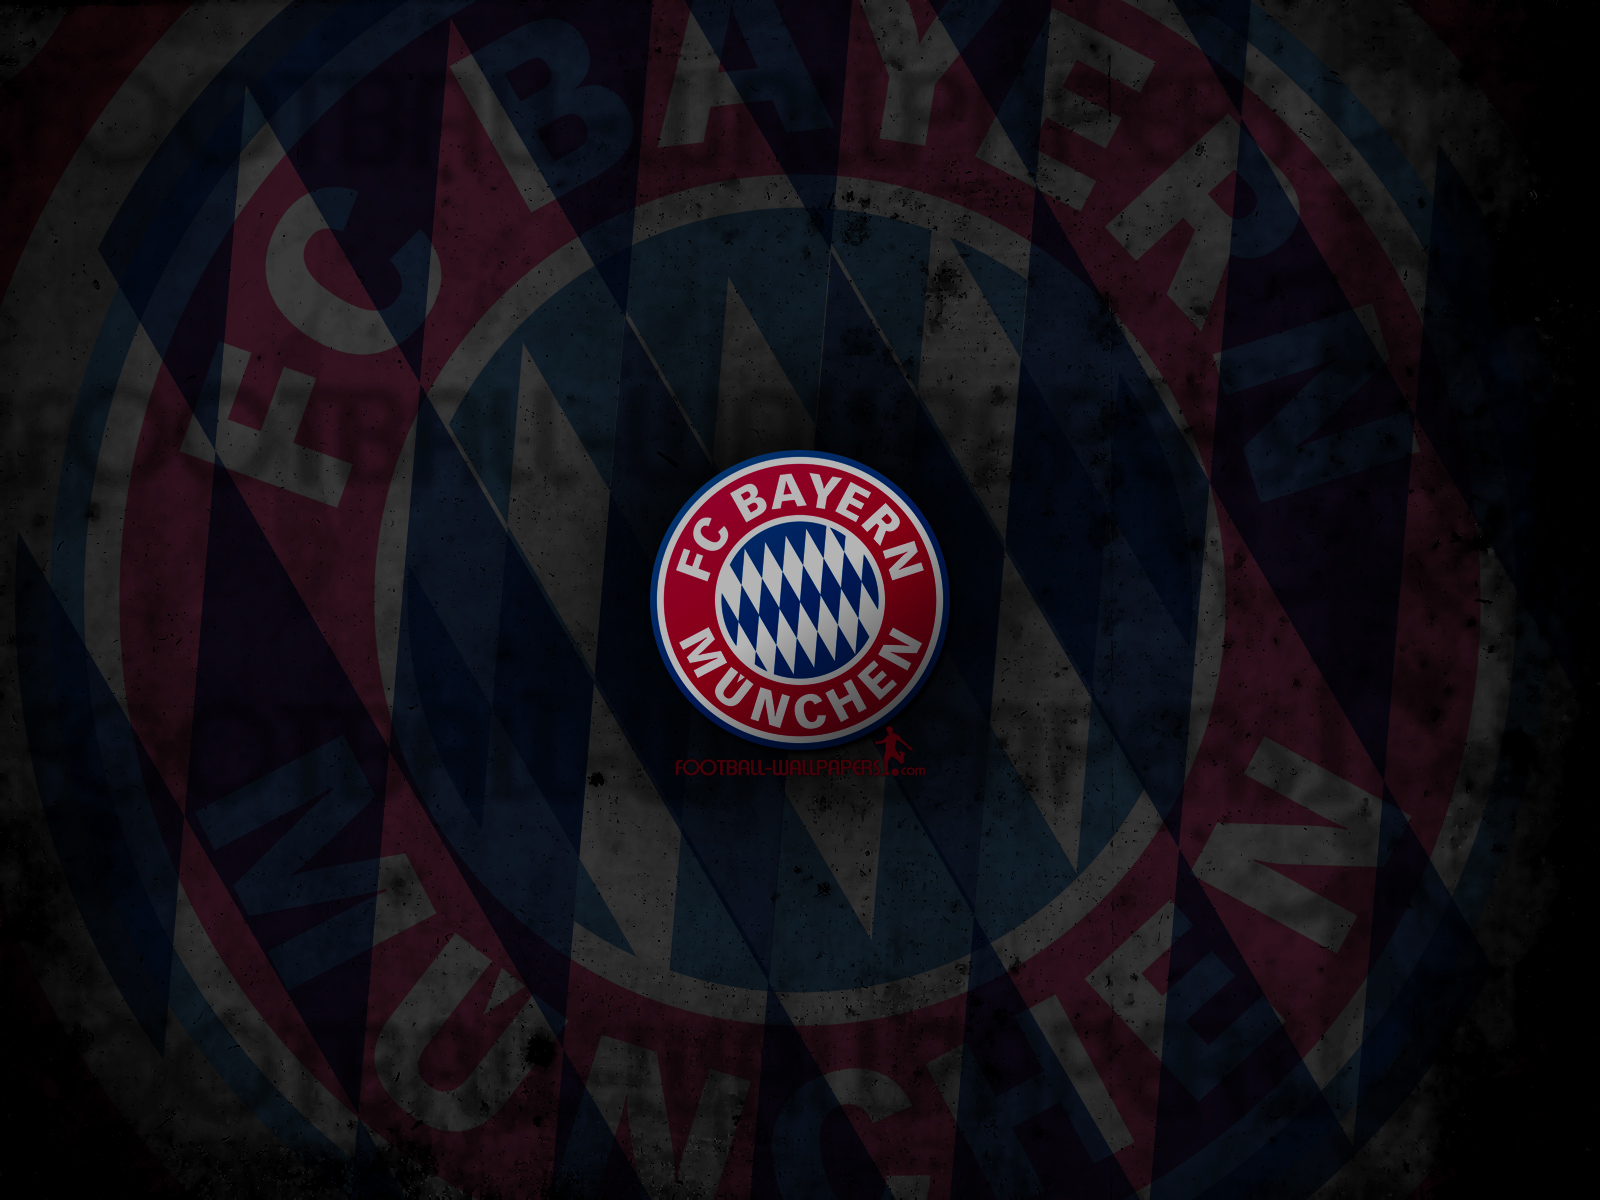 Free Download Fc Bayern Munich Wallpapers Hd Wallpapers Early 1600x1200 For Your Desktop Mobile Tablet Explore 77 Fc Bayern Munich Hd Wallpapers Bayern Munich Logo Wallpaper Bayern Munich Iphone